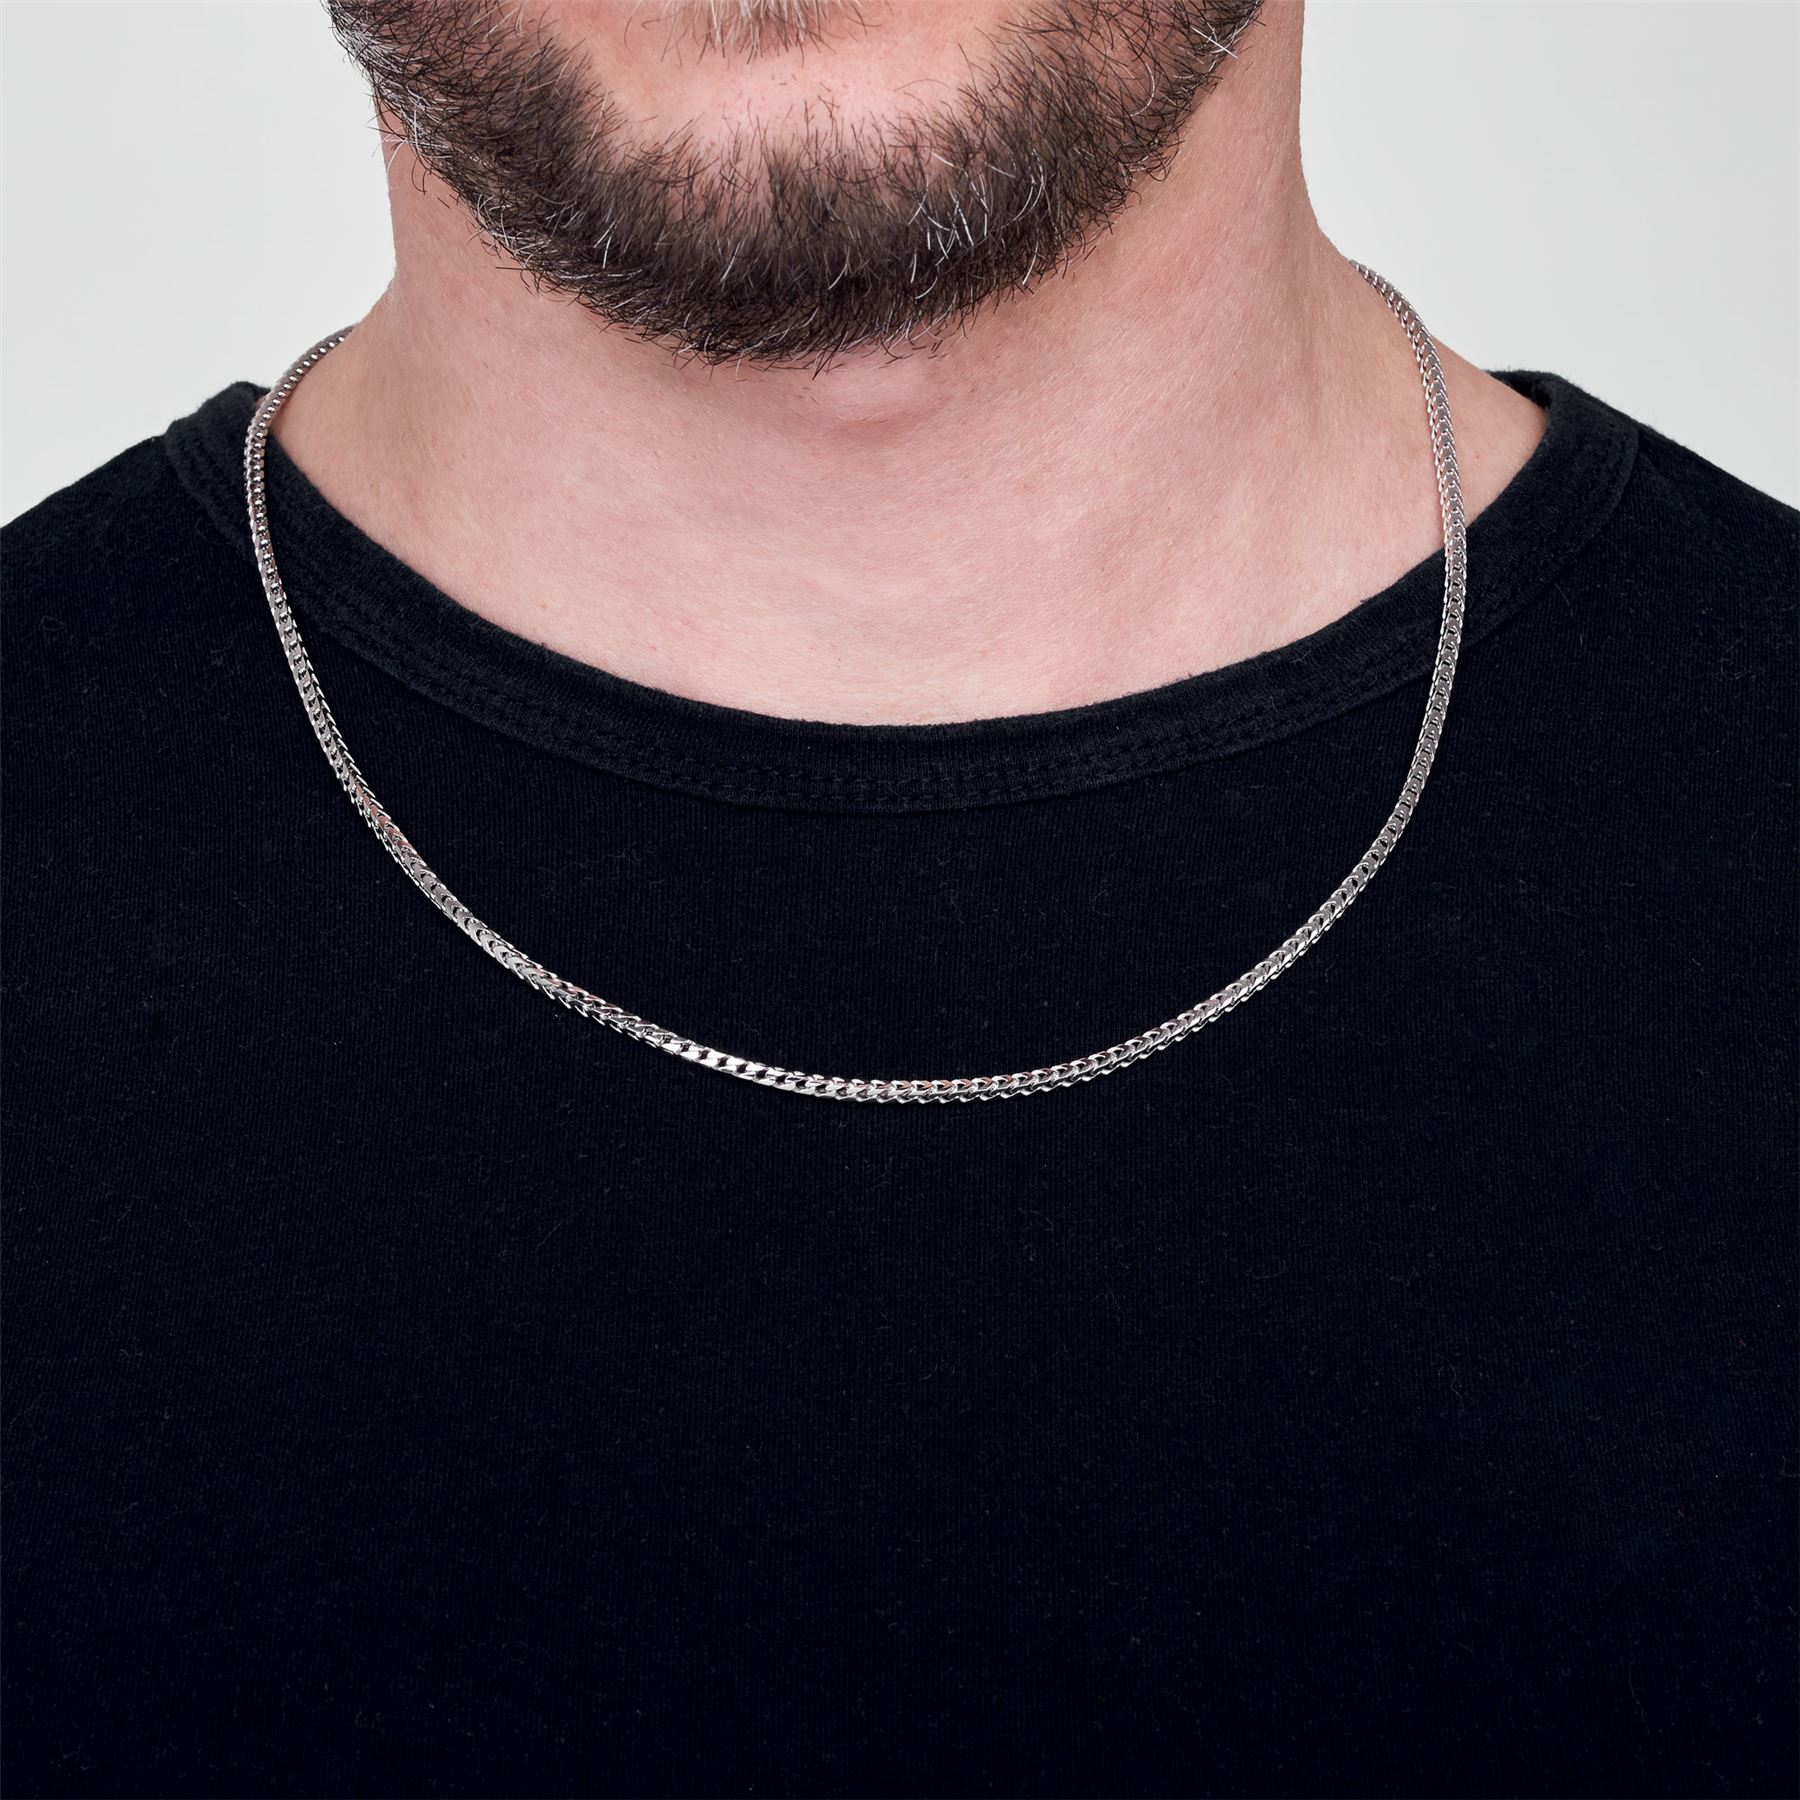 Amberta-925-Sterling-Silver-Link-Chain-Mens-Curb-Cuban-Necklace-ALL-SIZES-Italy thumbnail 9